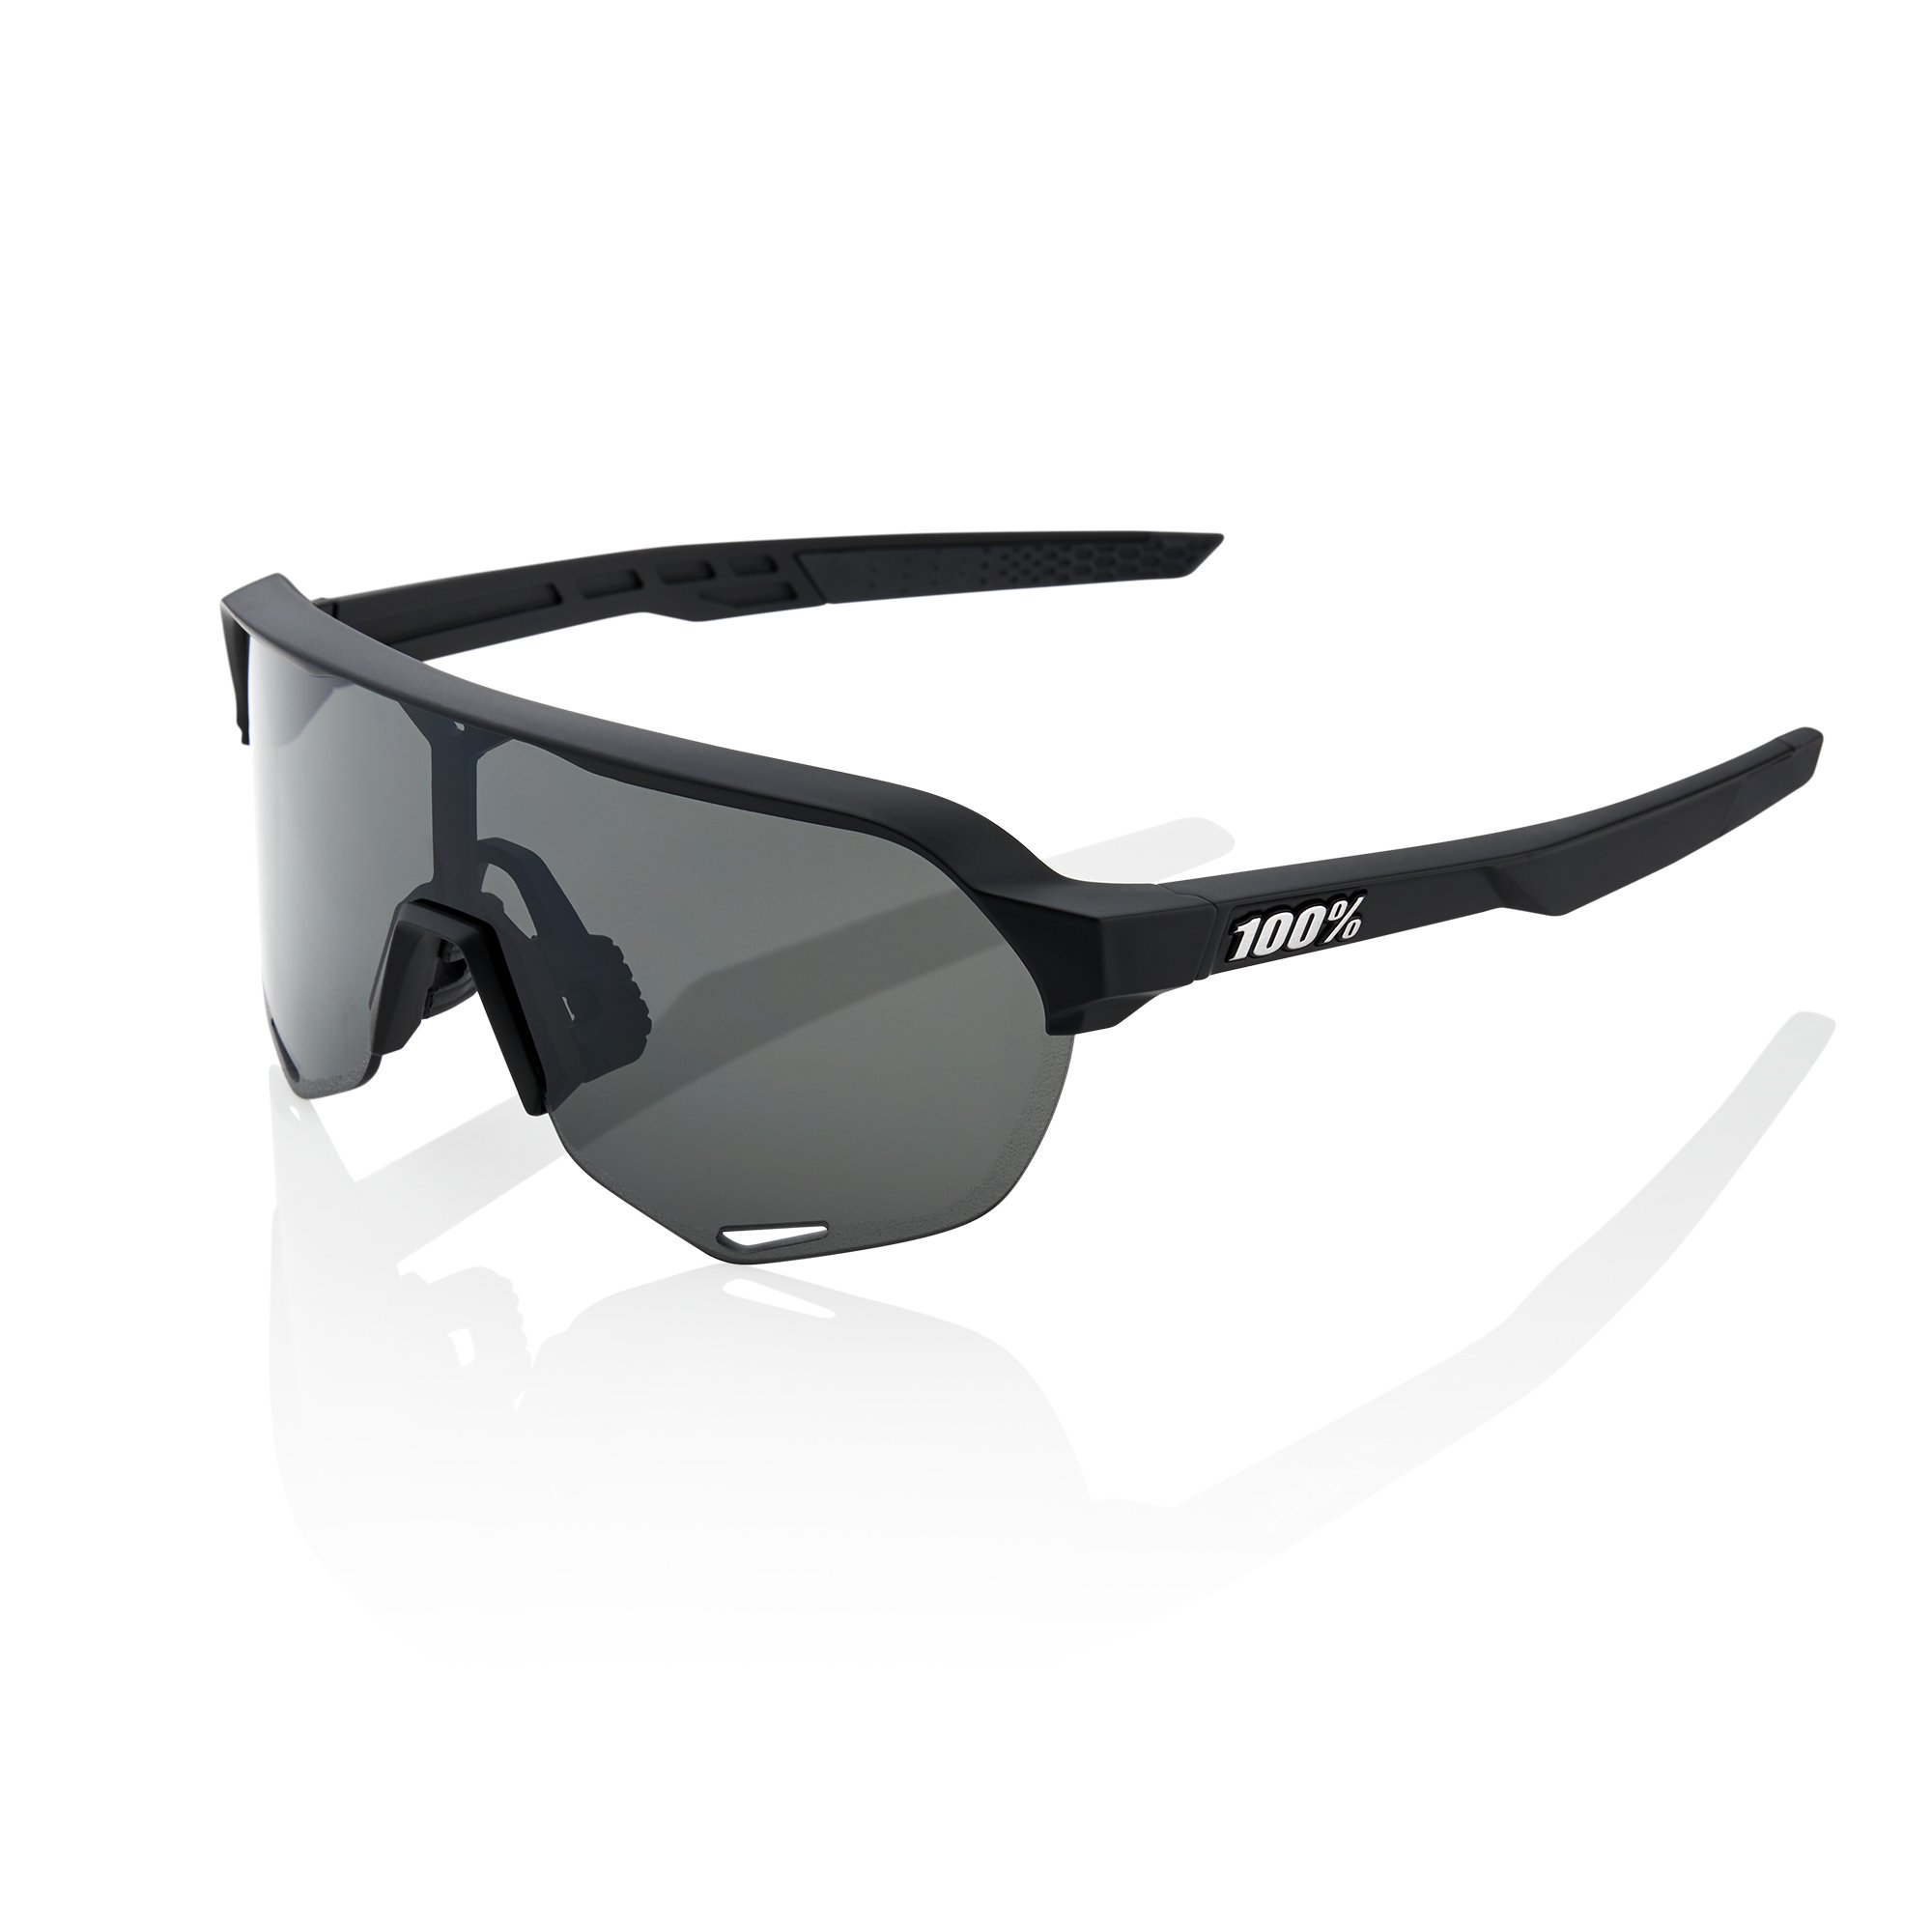 100% S2 Mens Performance Sunglasses Soft Tact Black Smoke Lens includes Clear Replacement Lens by 100%